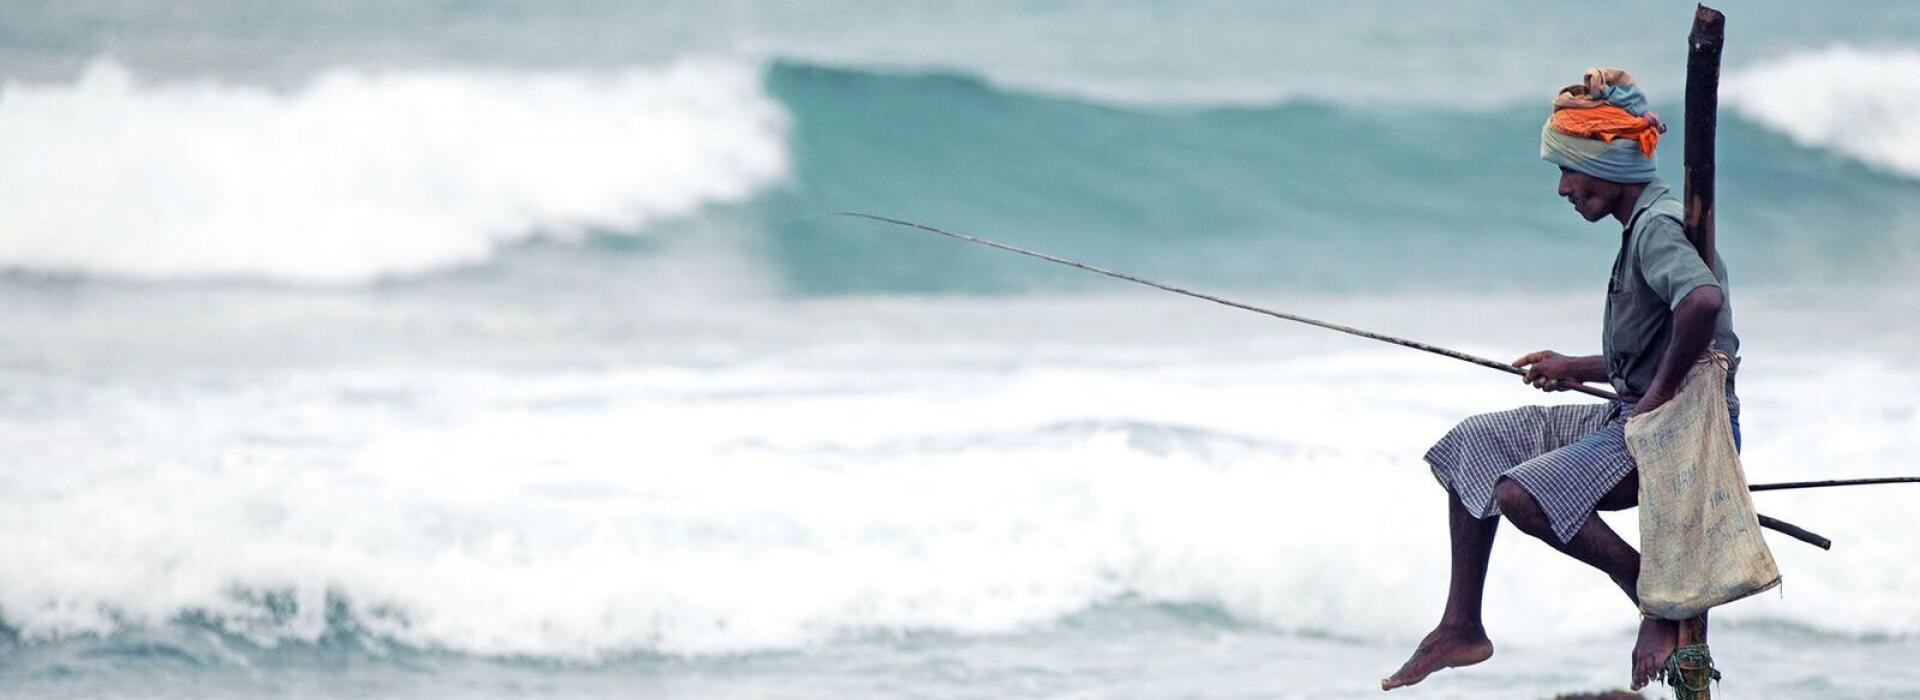 Sri Lankan Fisherman sitting on a pole fishing near ocean shore.